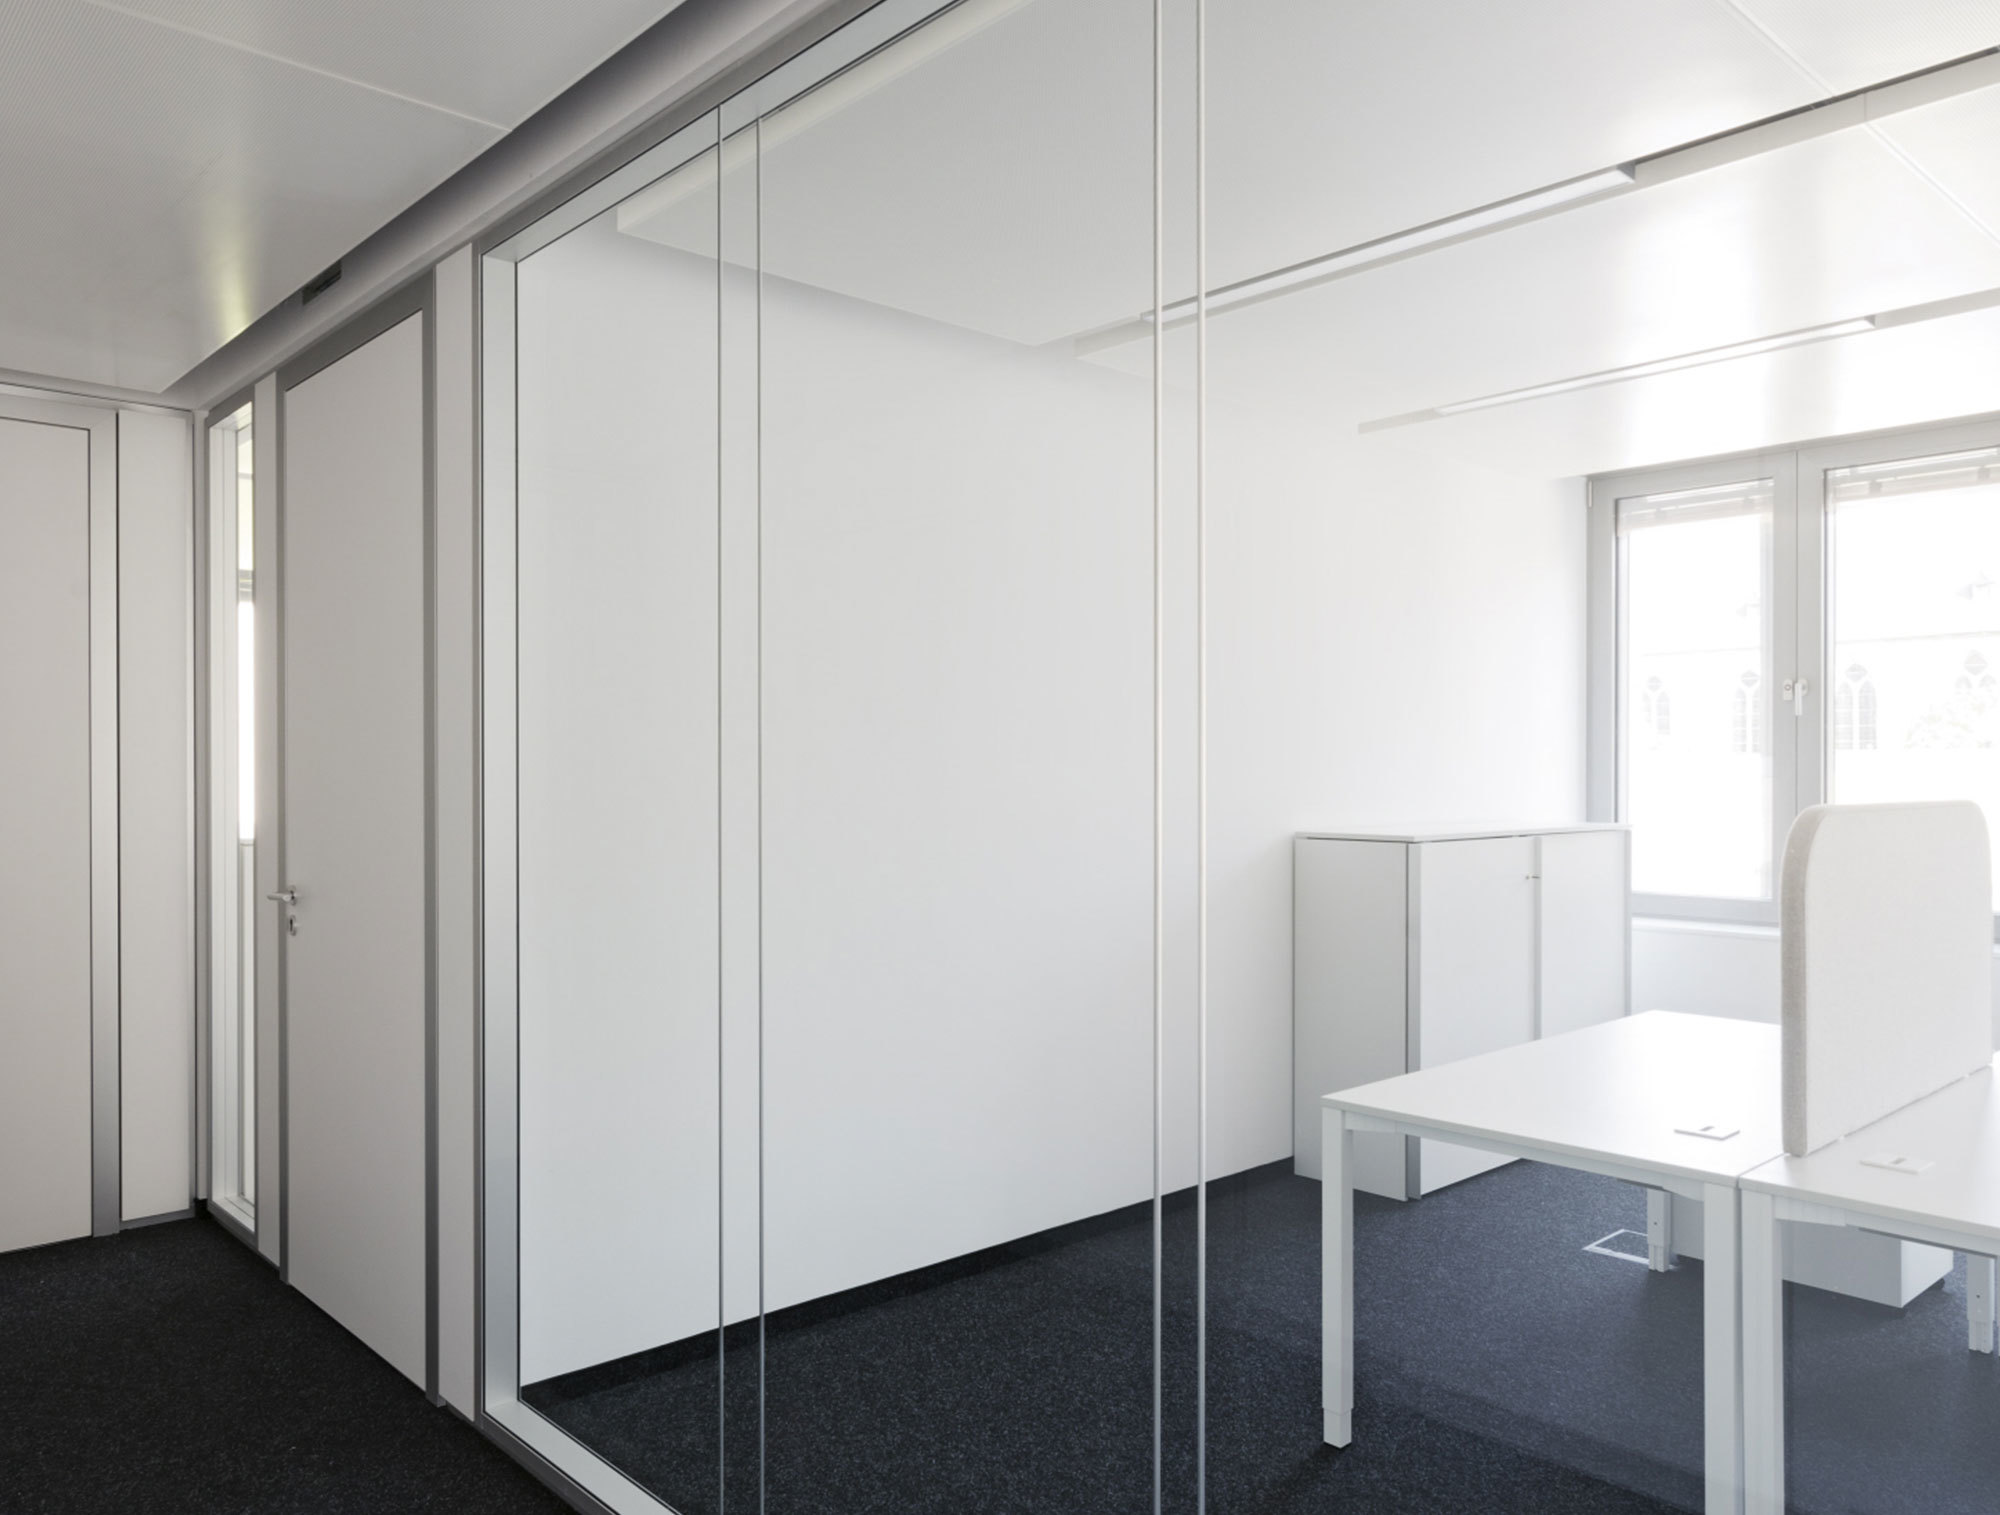 Glass partition Lindner Life 622 by Lindner Group | STYLEPARK